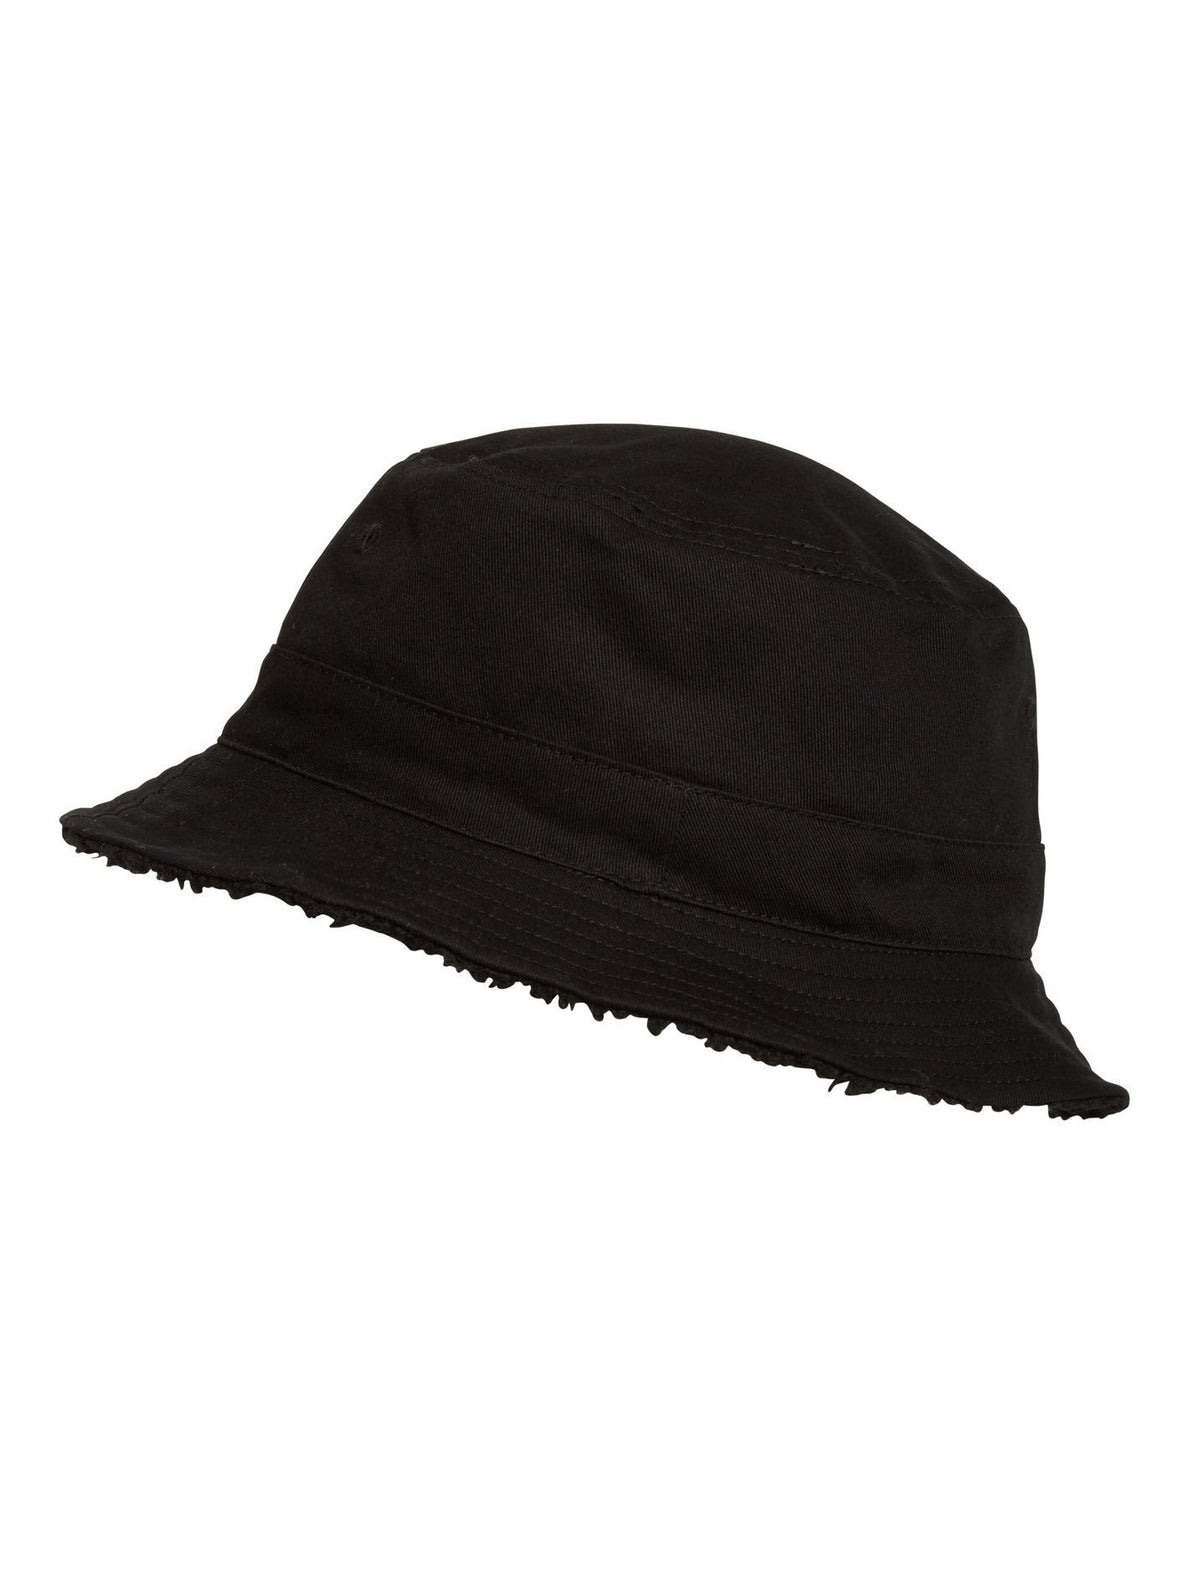 BOBY BUCKET HAT (D5532050_BLK) [1]